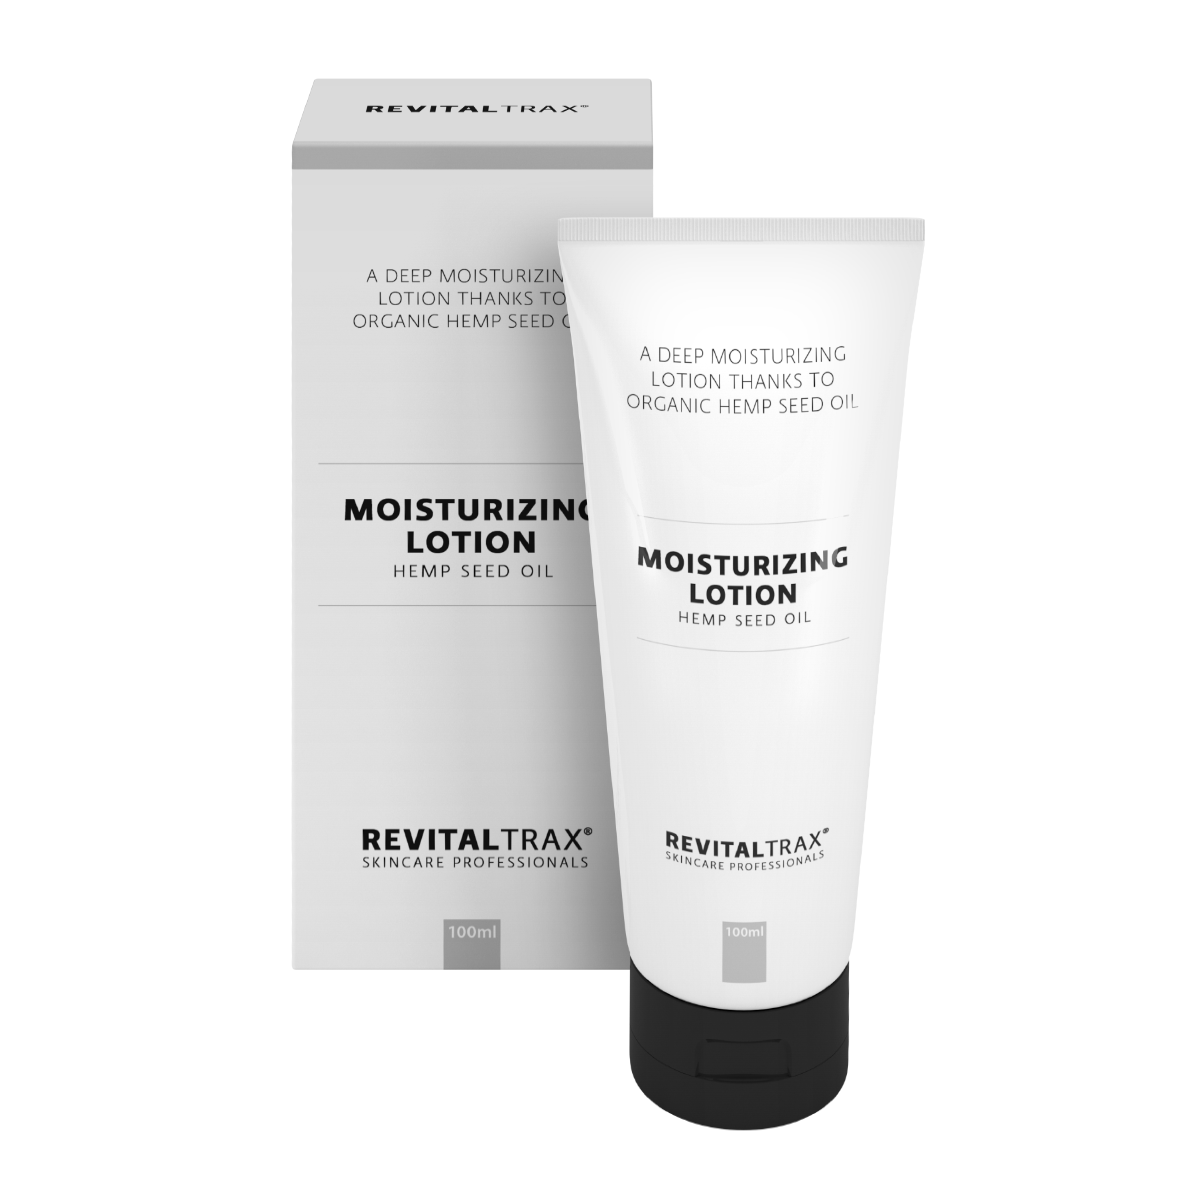 RevitalTrax Moisturizing Lotion. Deeply moisturizing facial lotion with hemp seed oil